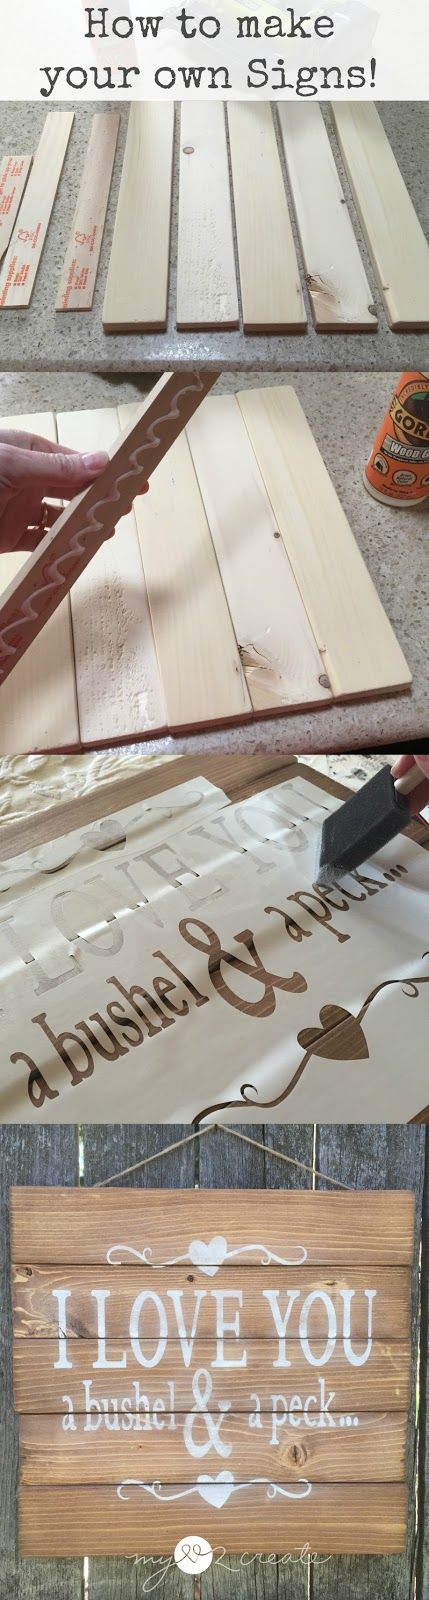 #woodworkingplans #woodworking #woodworkingprojects How to make your own signs including ideas without a cutting machine! Tutorial at MyLove2Create